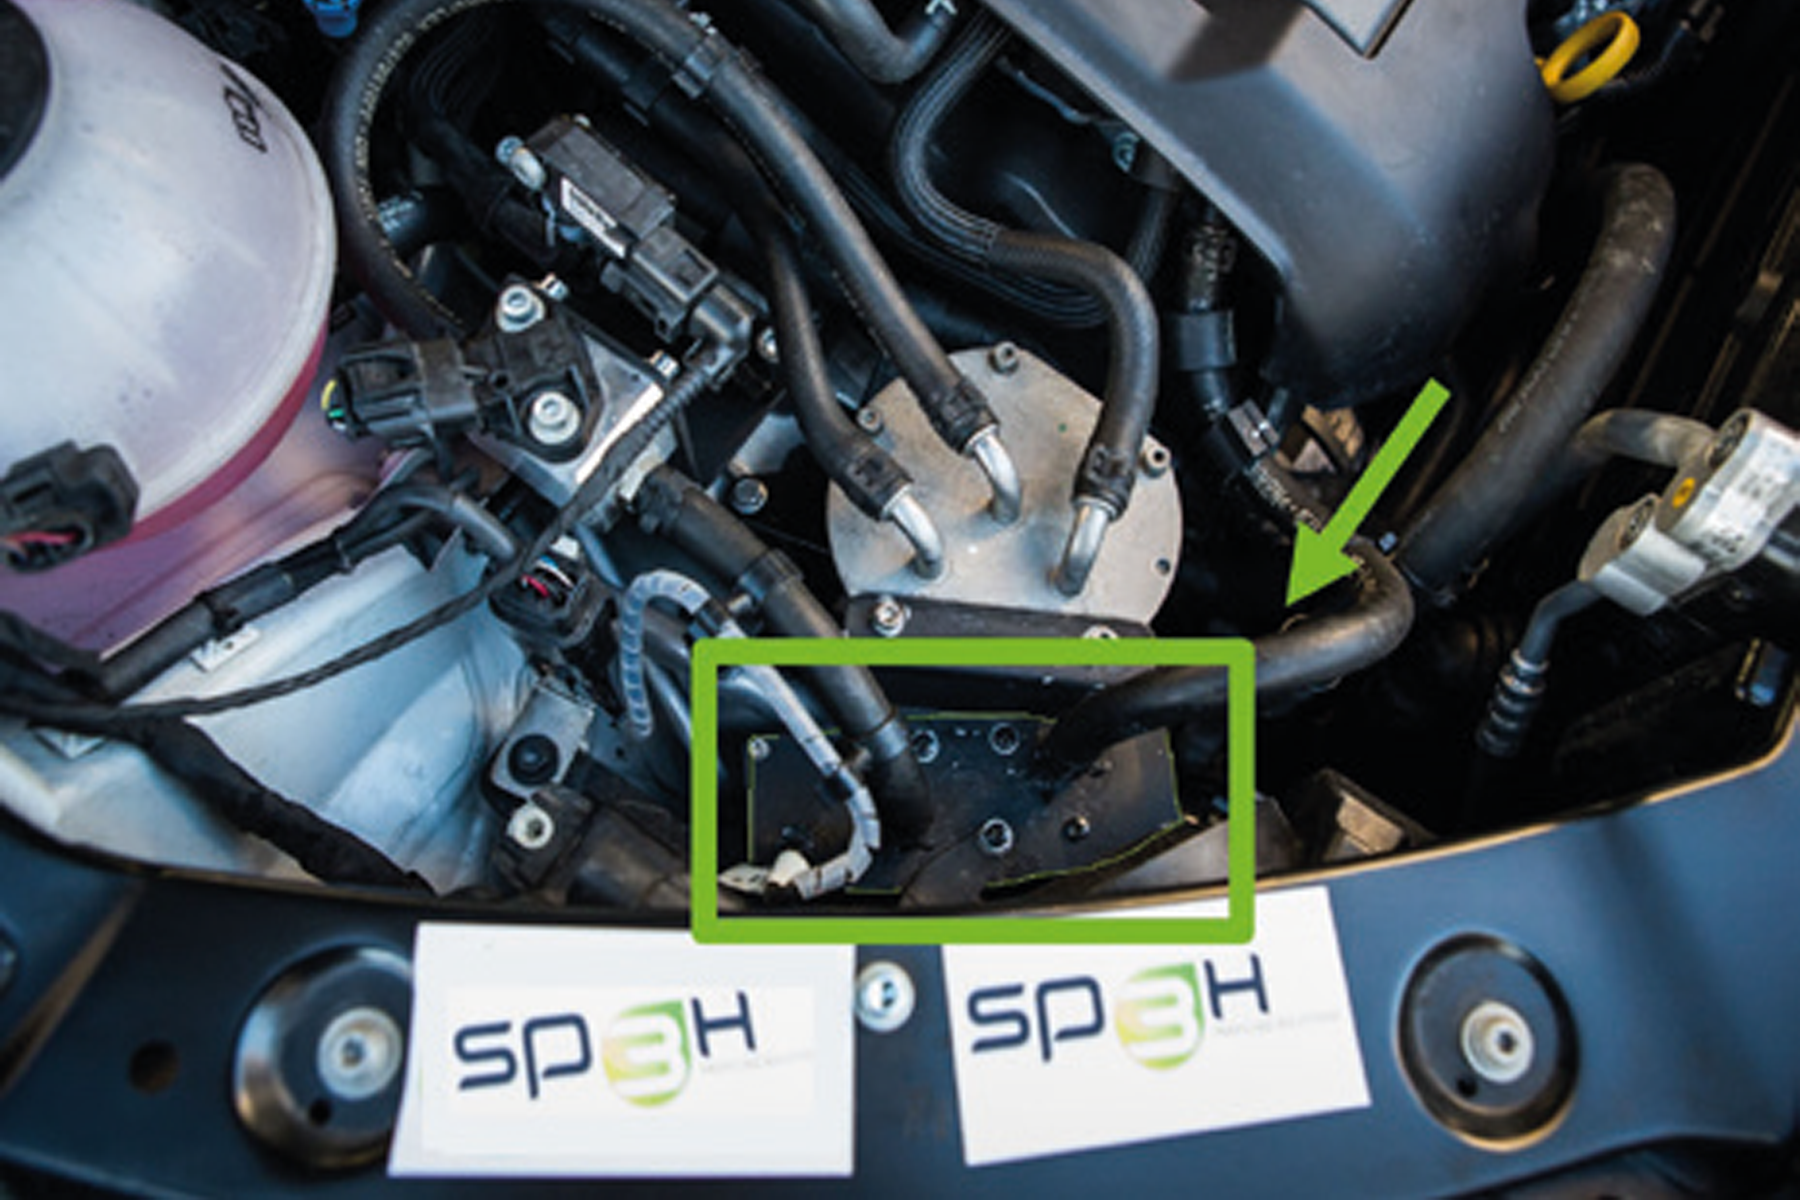 The picture shows the SP3H sensor implementation in the engine compartment.